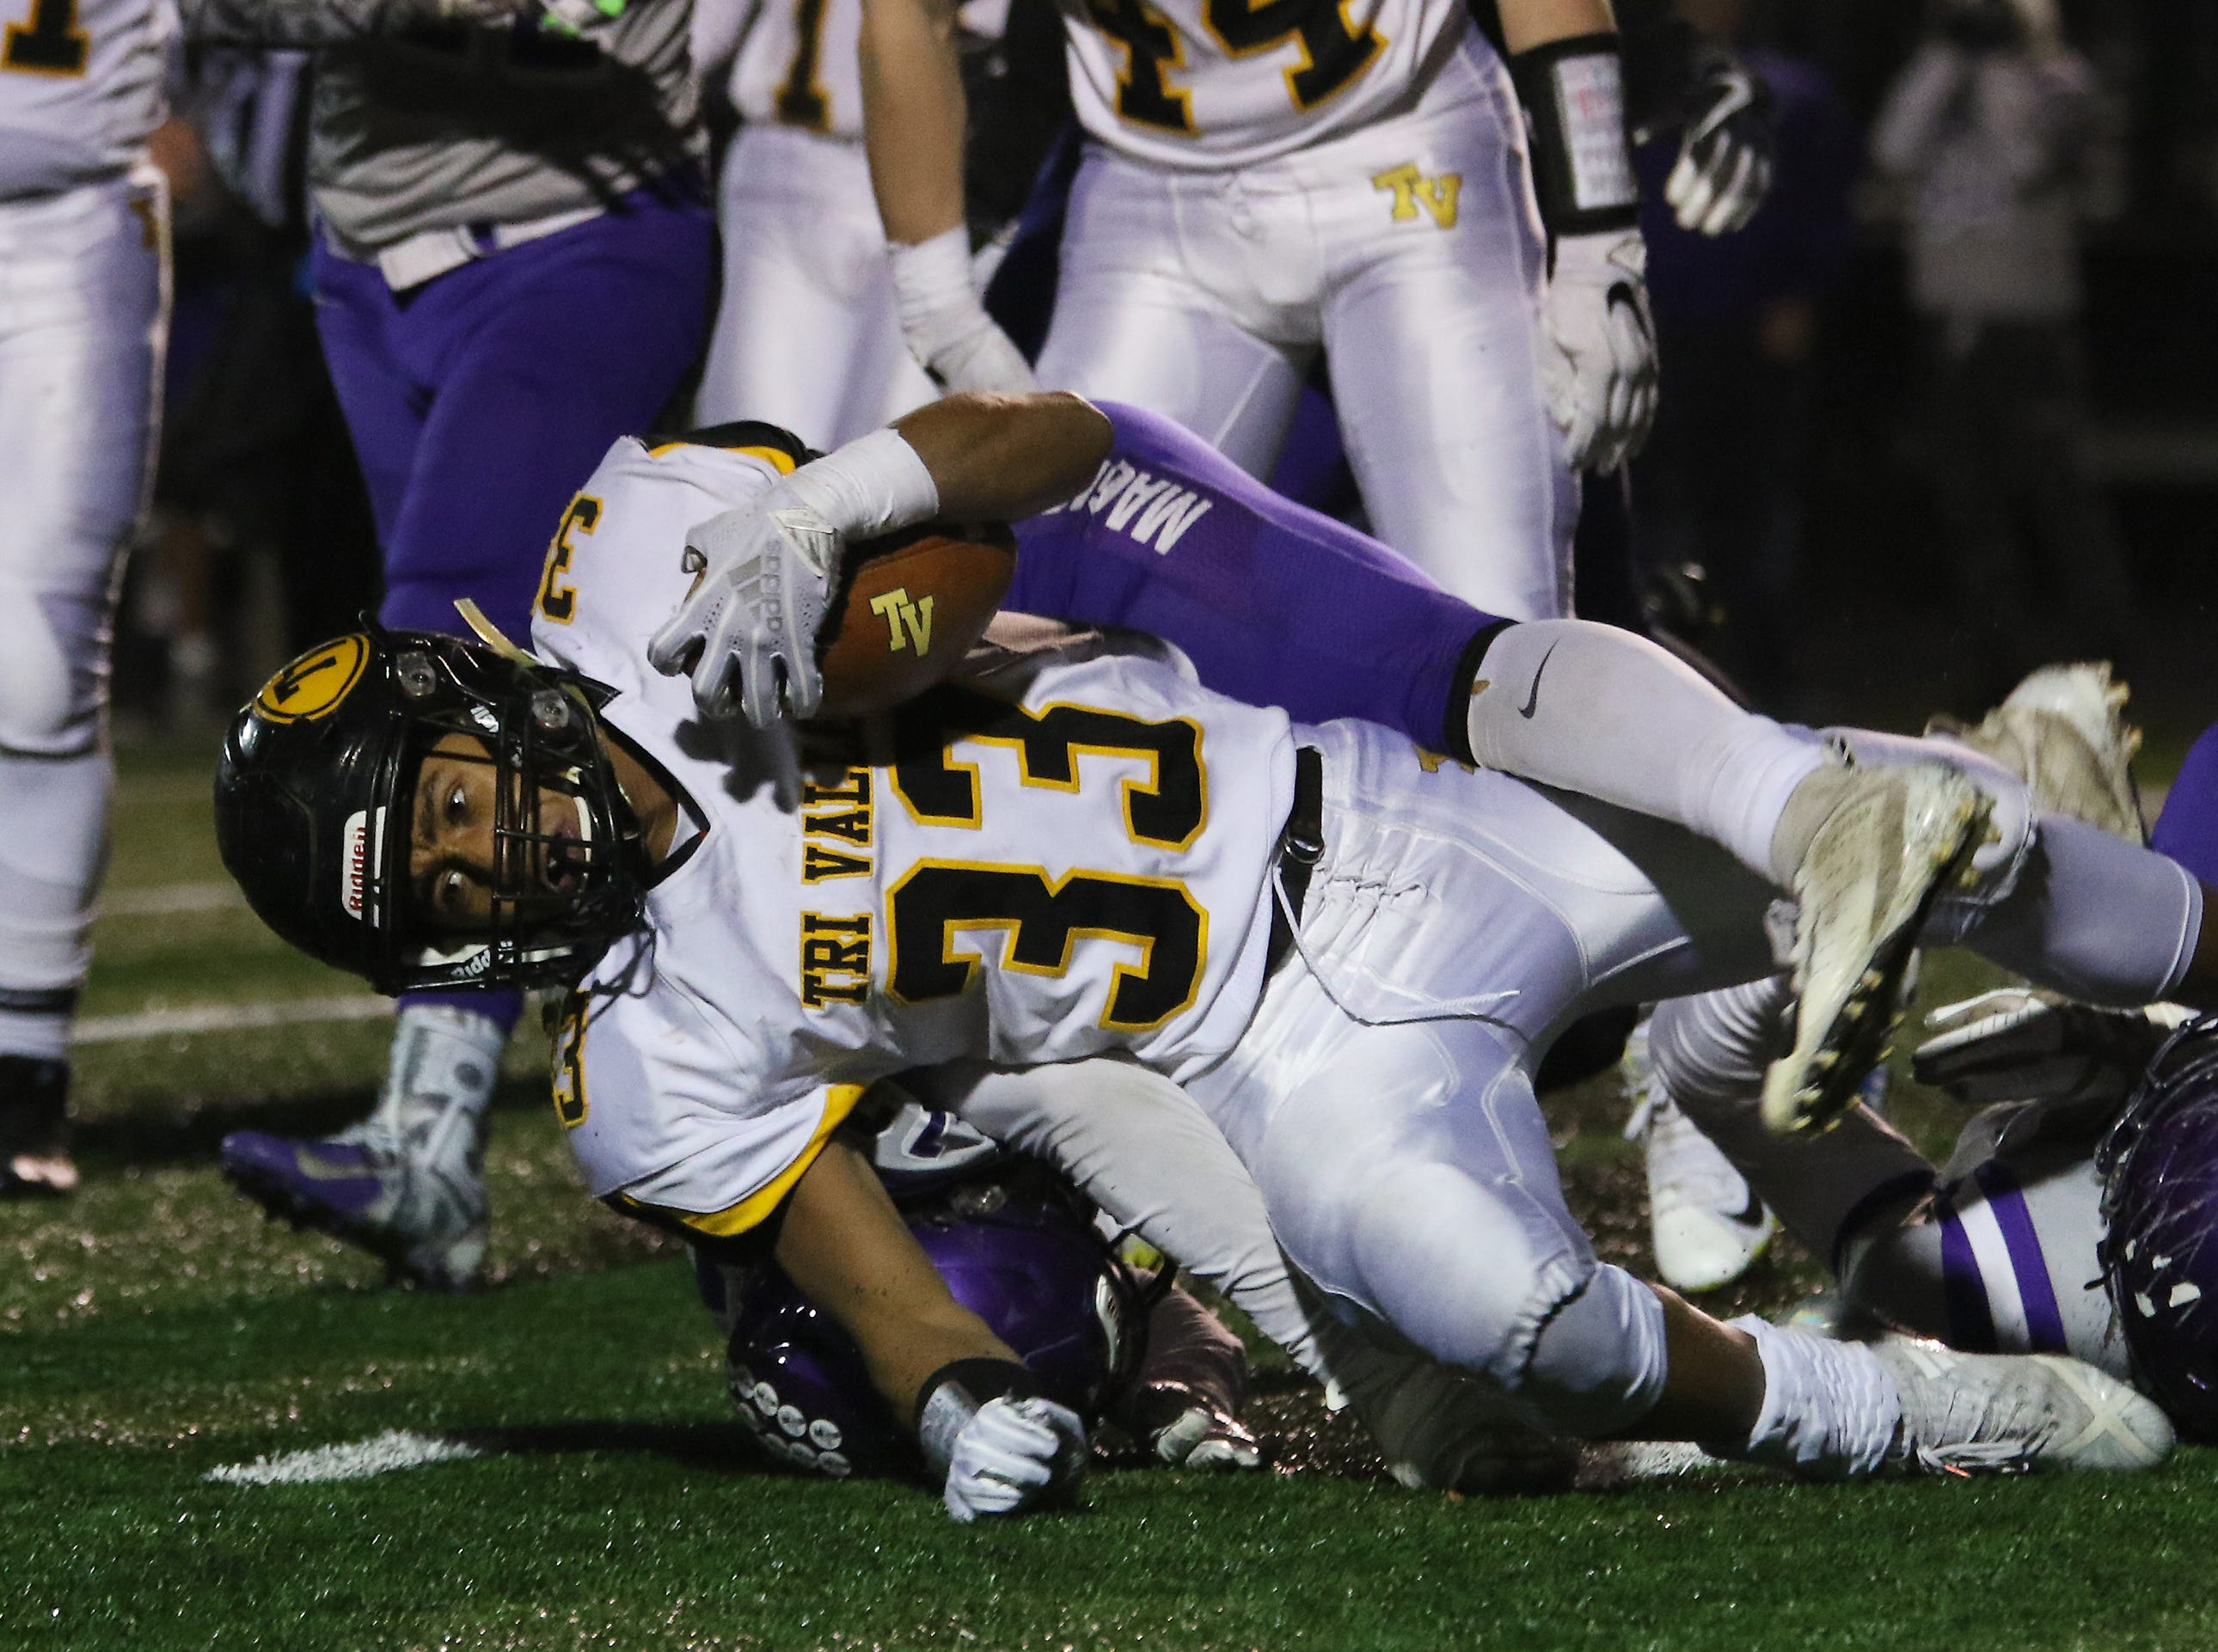 Tri-Valley's Jordan Pantaleo lunges for an extra yard against Barberton.